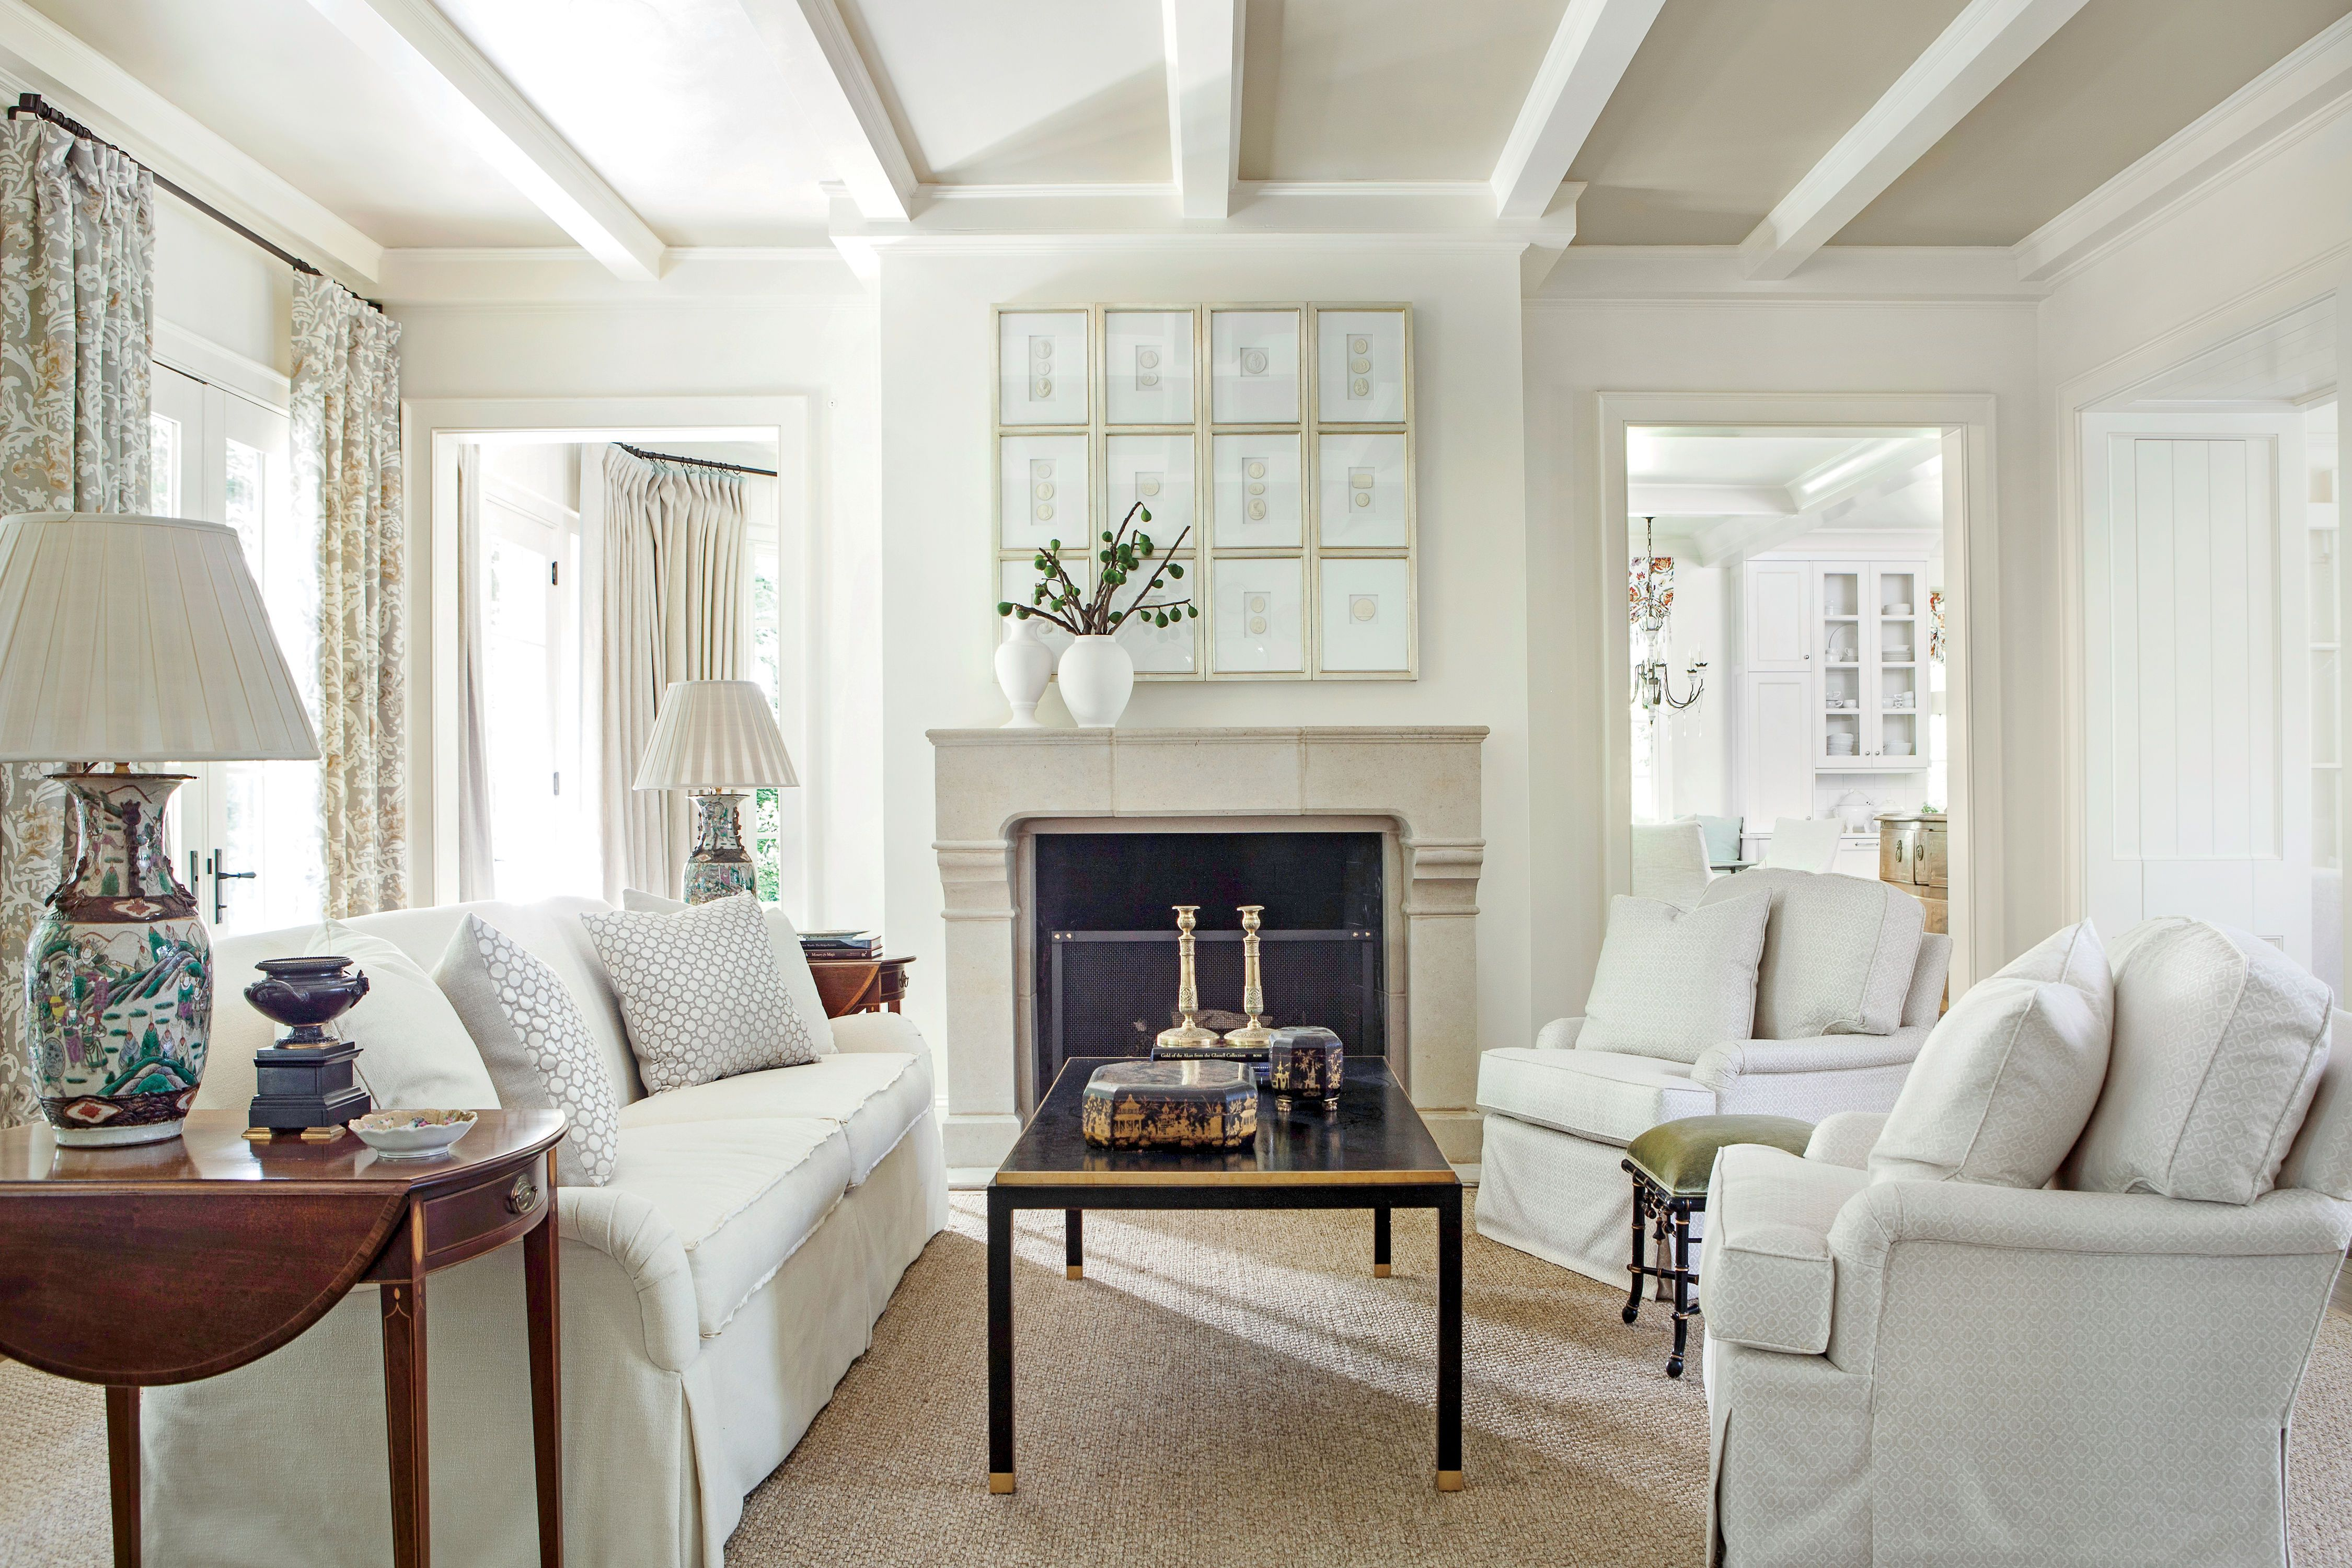 Lighten Up the Living Room | Casual elegance, Living rooms and Room